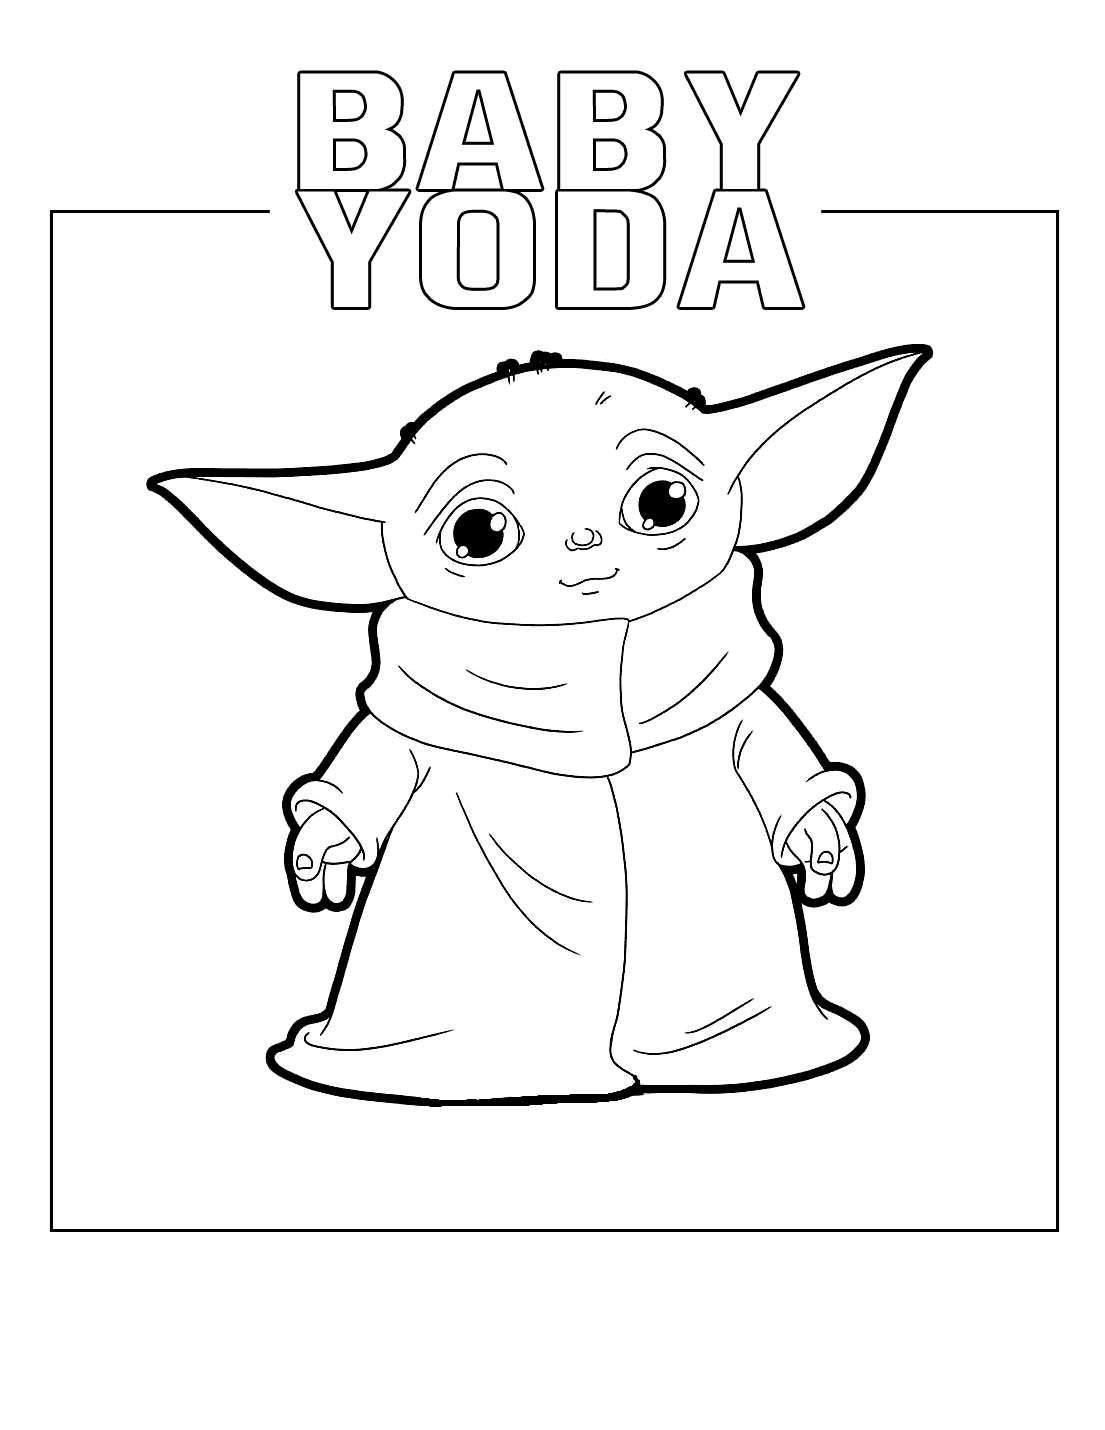 Baby Yoda Coloring Pages In 2021 Coloring Pages Christmas Poems Color